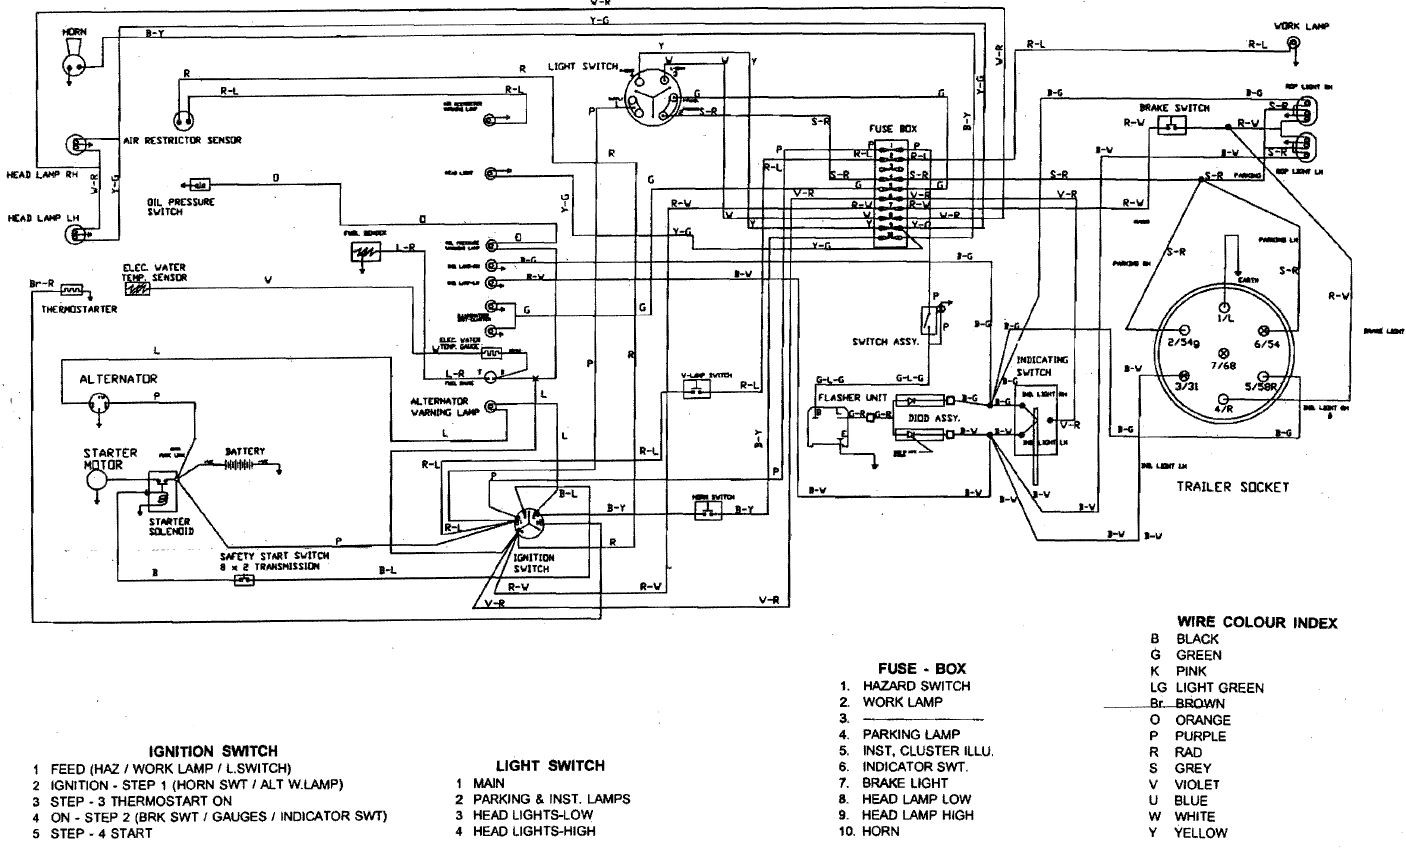 kubota wg600 ignition wiring diagram kubota 3 cylinder diesel